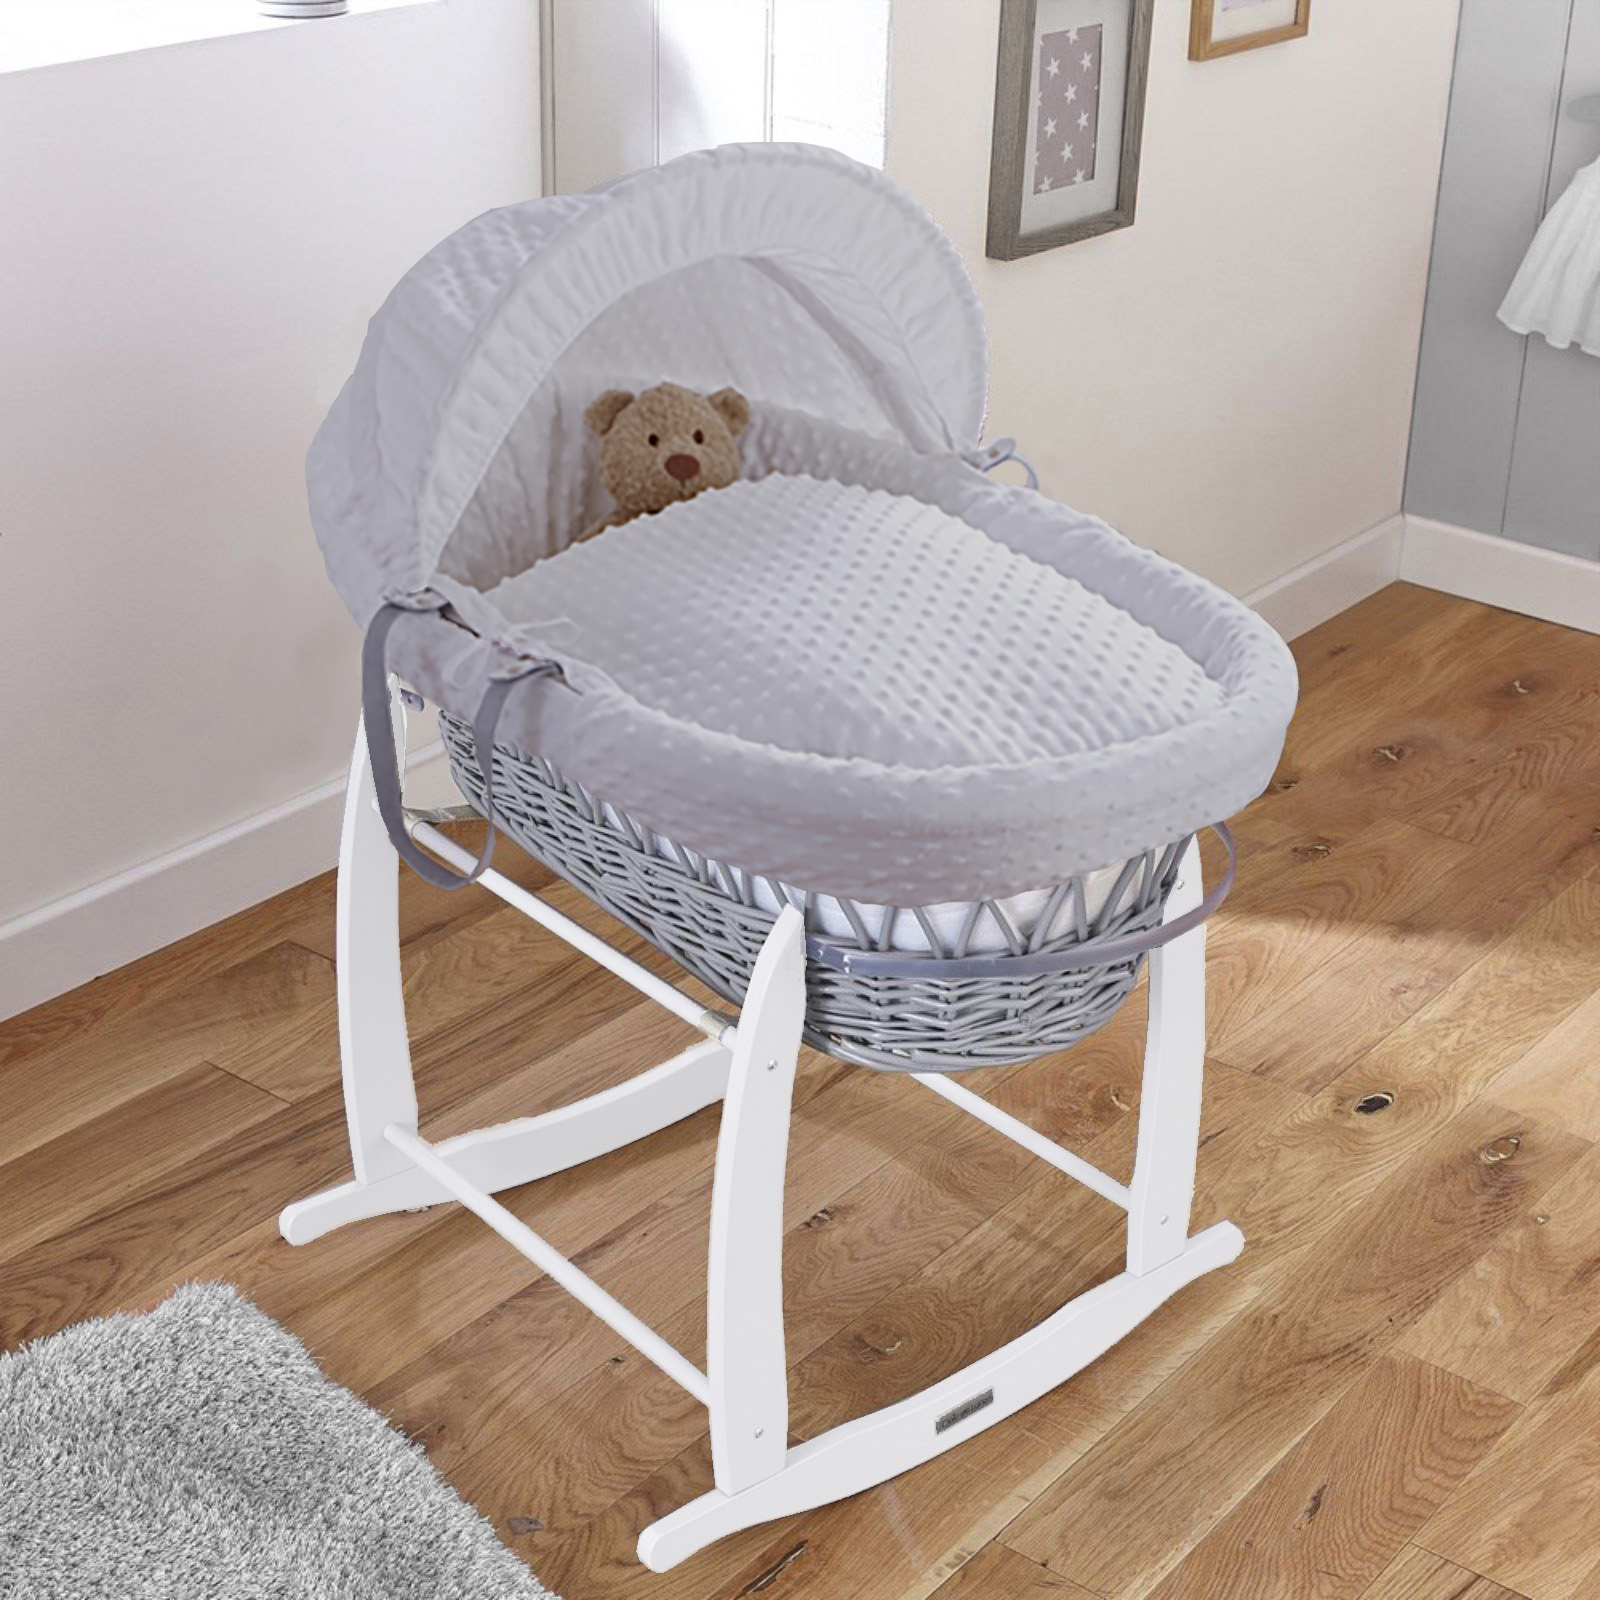 Clair De Lune Padded Grey Wicker Moses Basket & Deluxe Rocking Stand - Dimple Grey